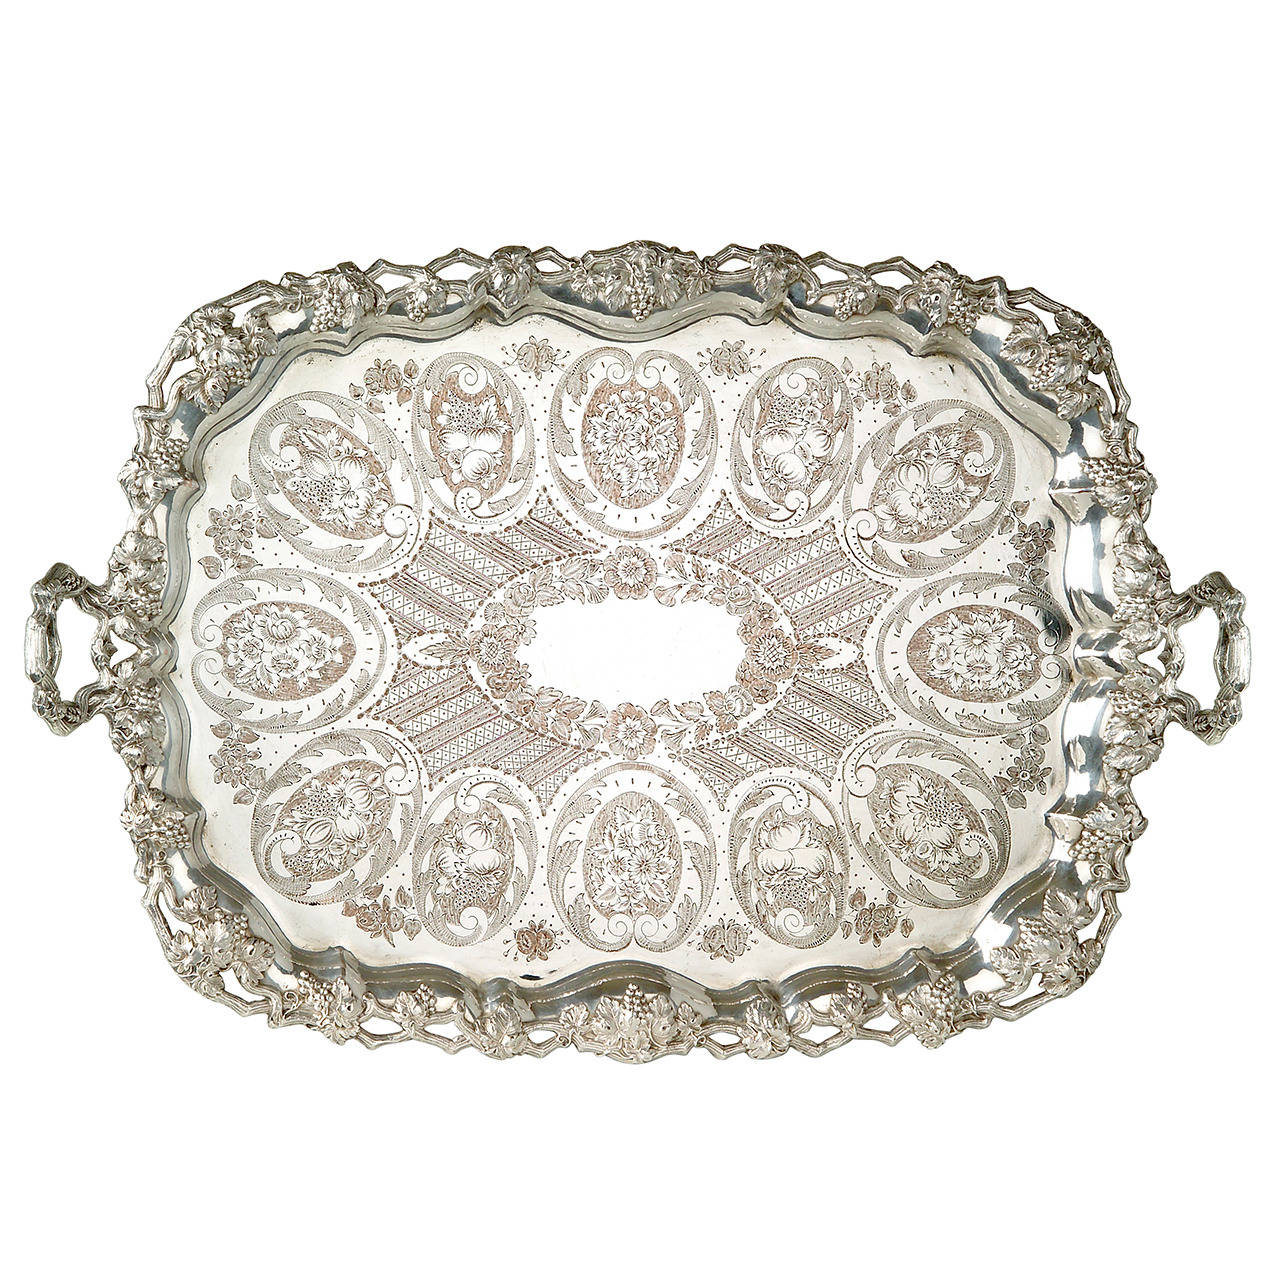 A large engraved silver plated tray with silver garnitures by Jean-Joseph Micaud For Sale